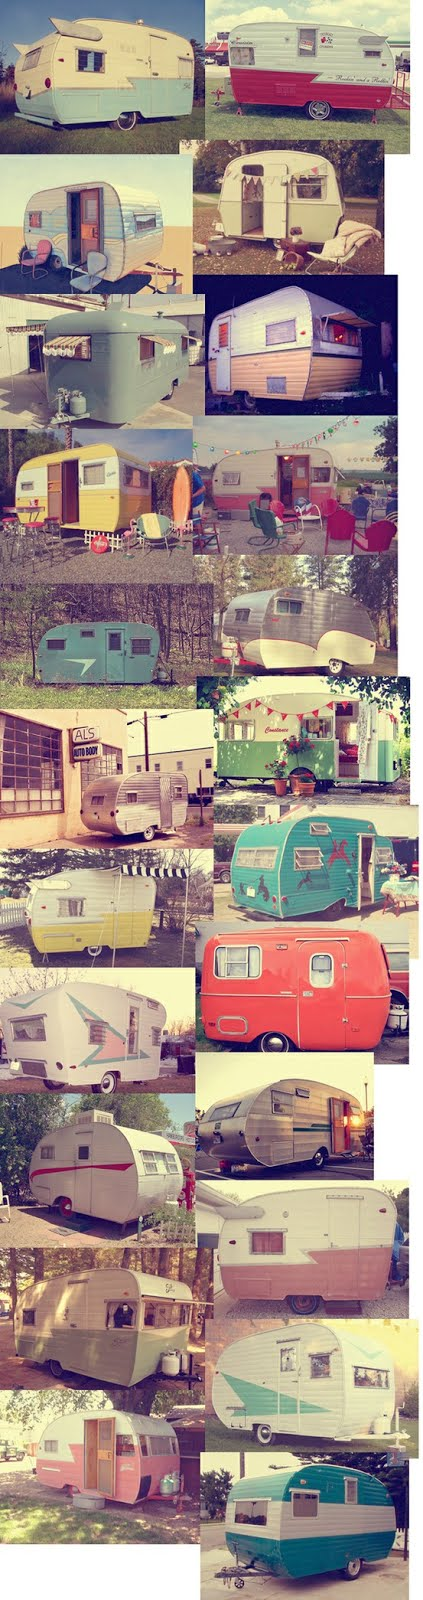 Viva Vintage Travel Trailers!